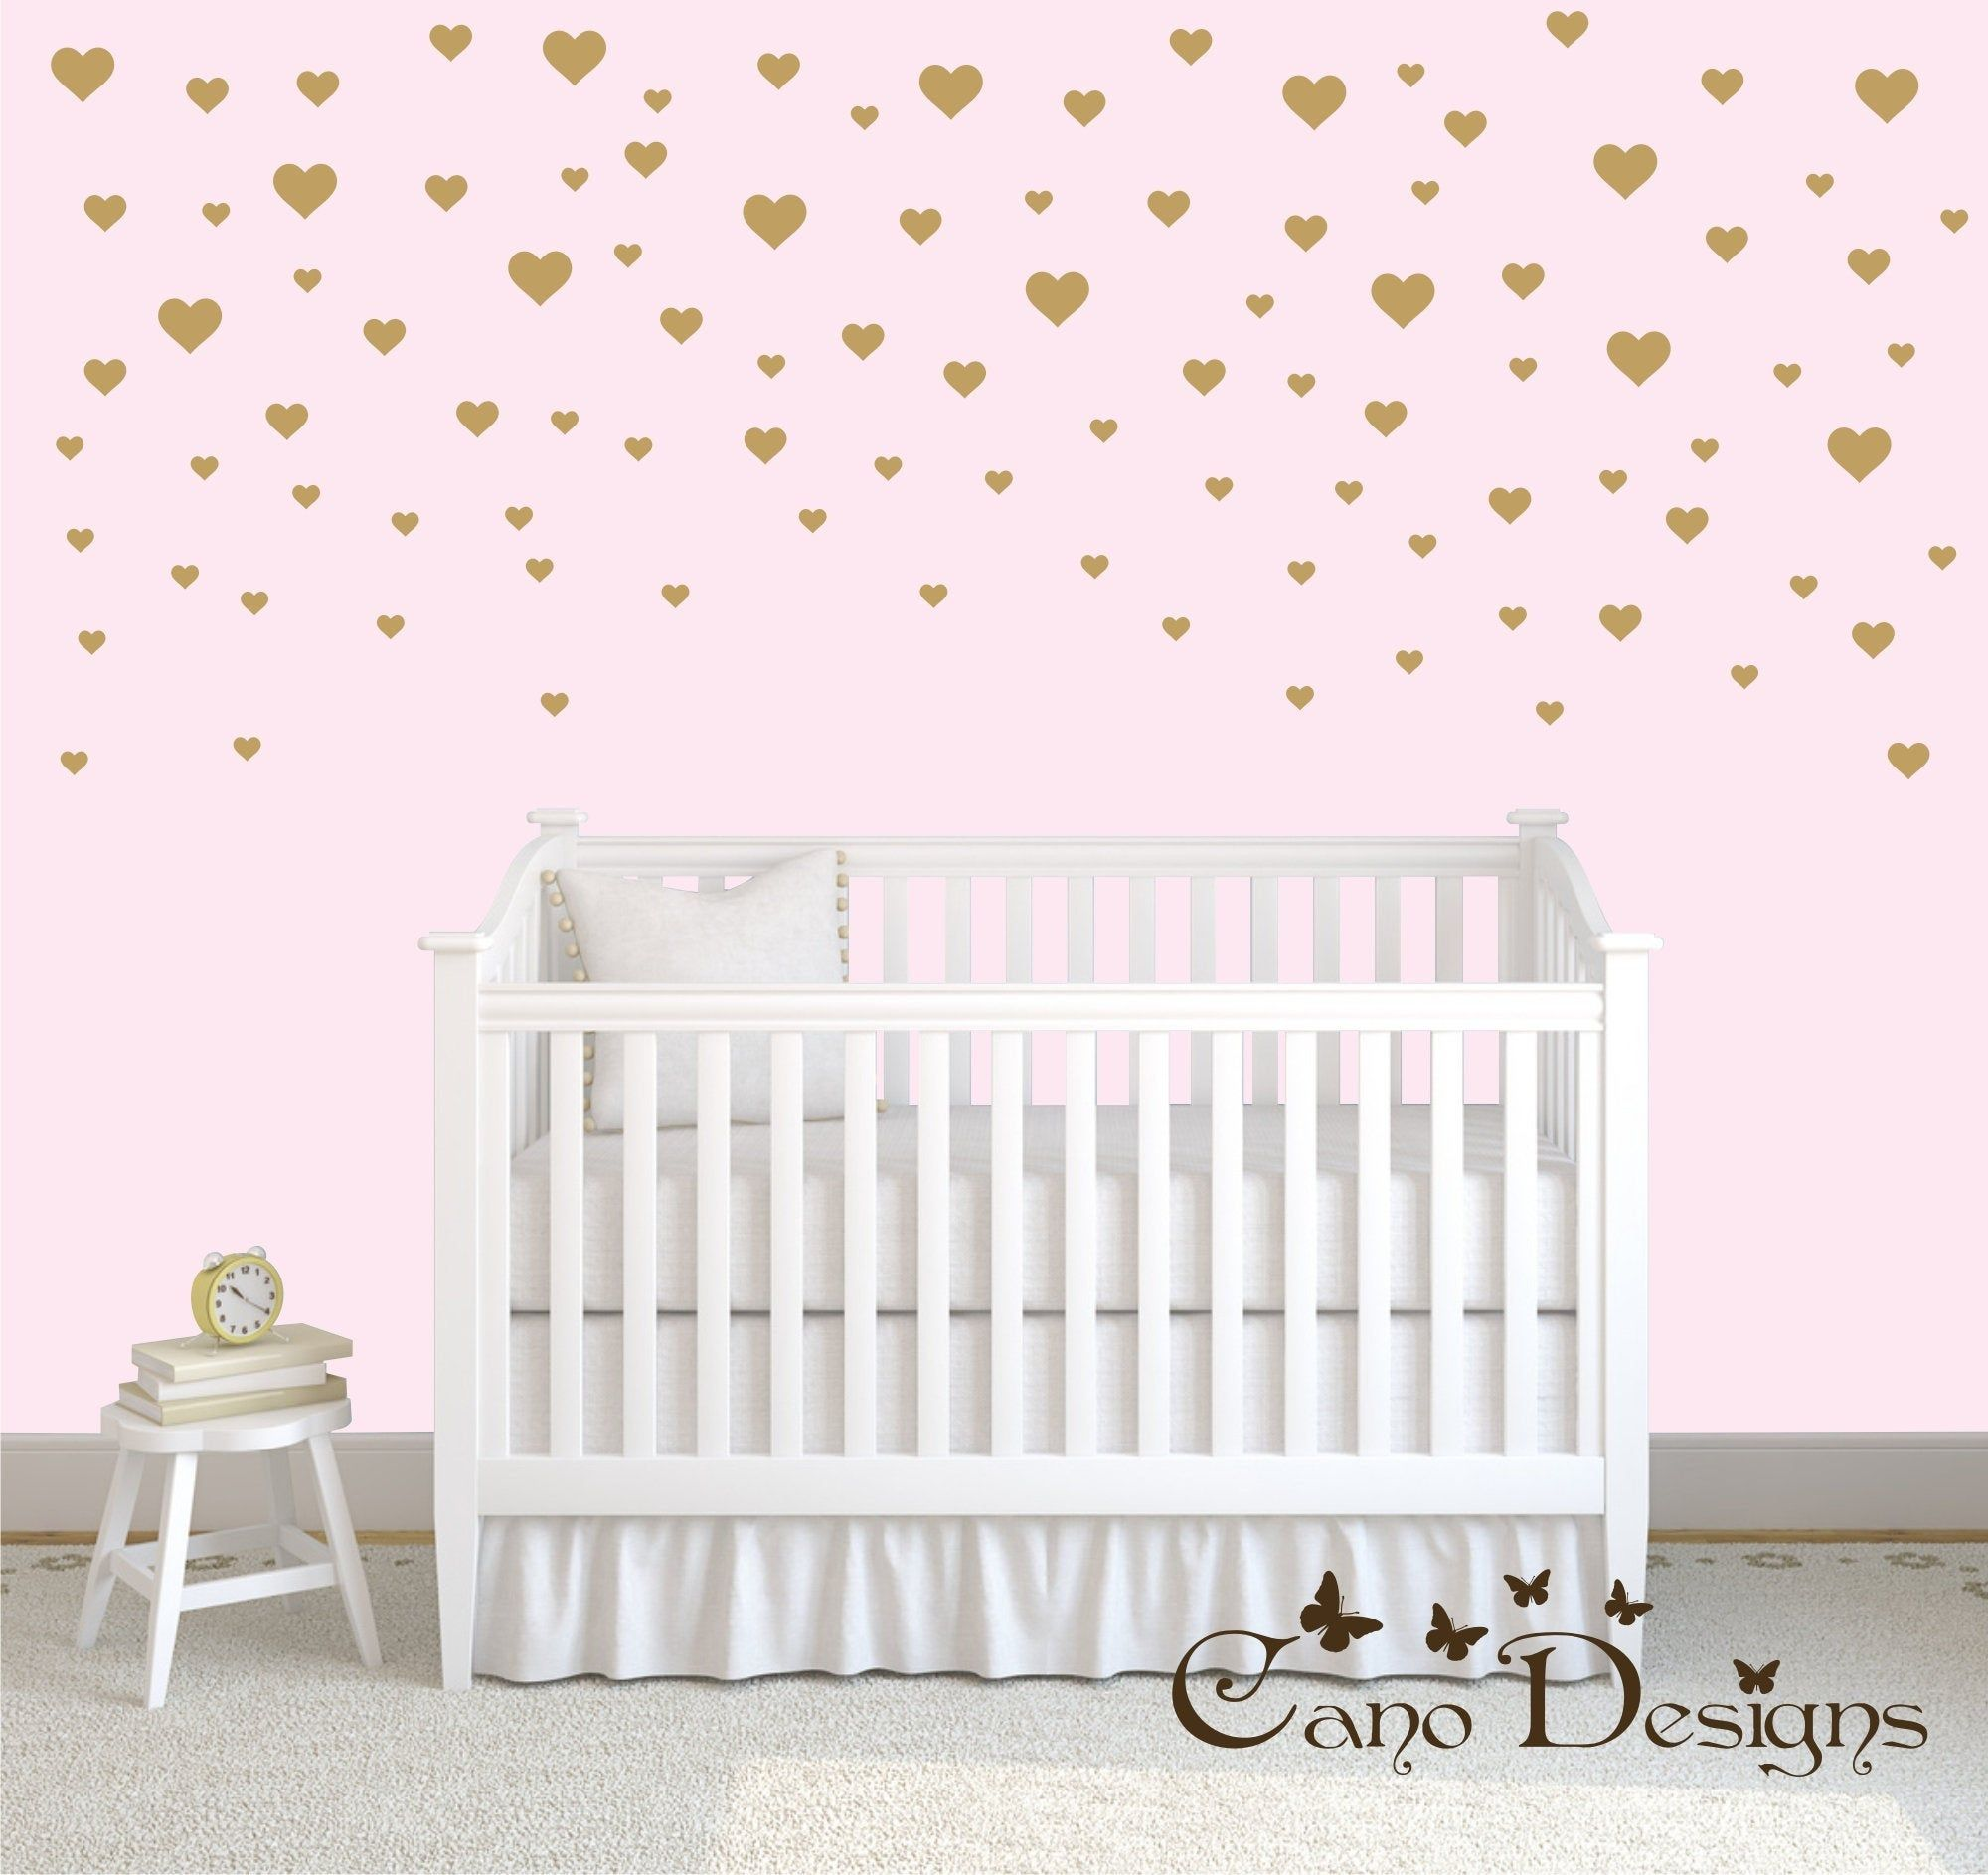 Hearts Wall Decals Set 3 Sizes Nursery Wall Decor Easy Peel And